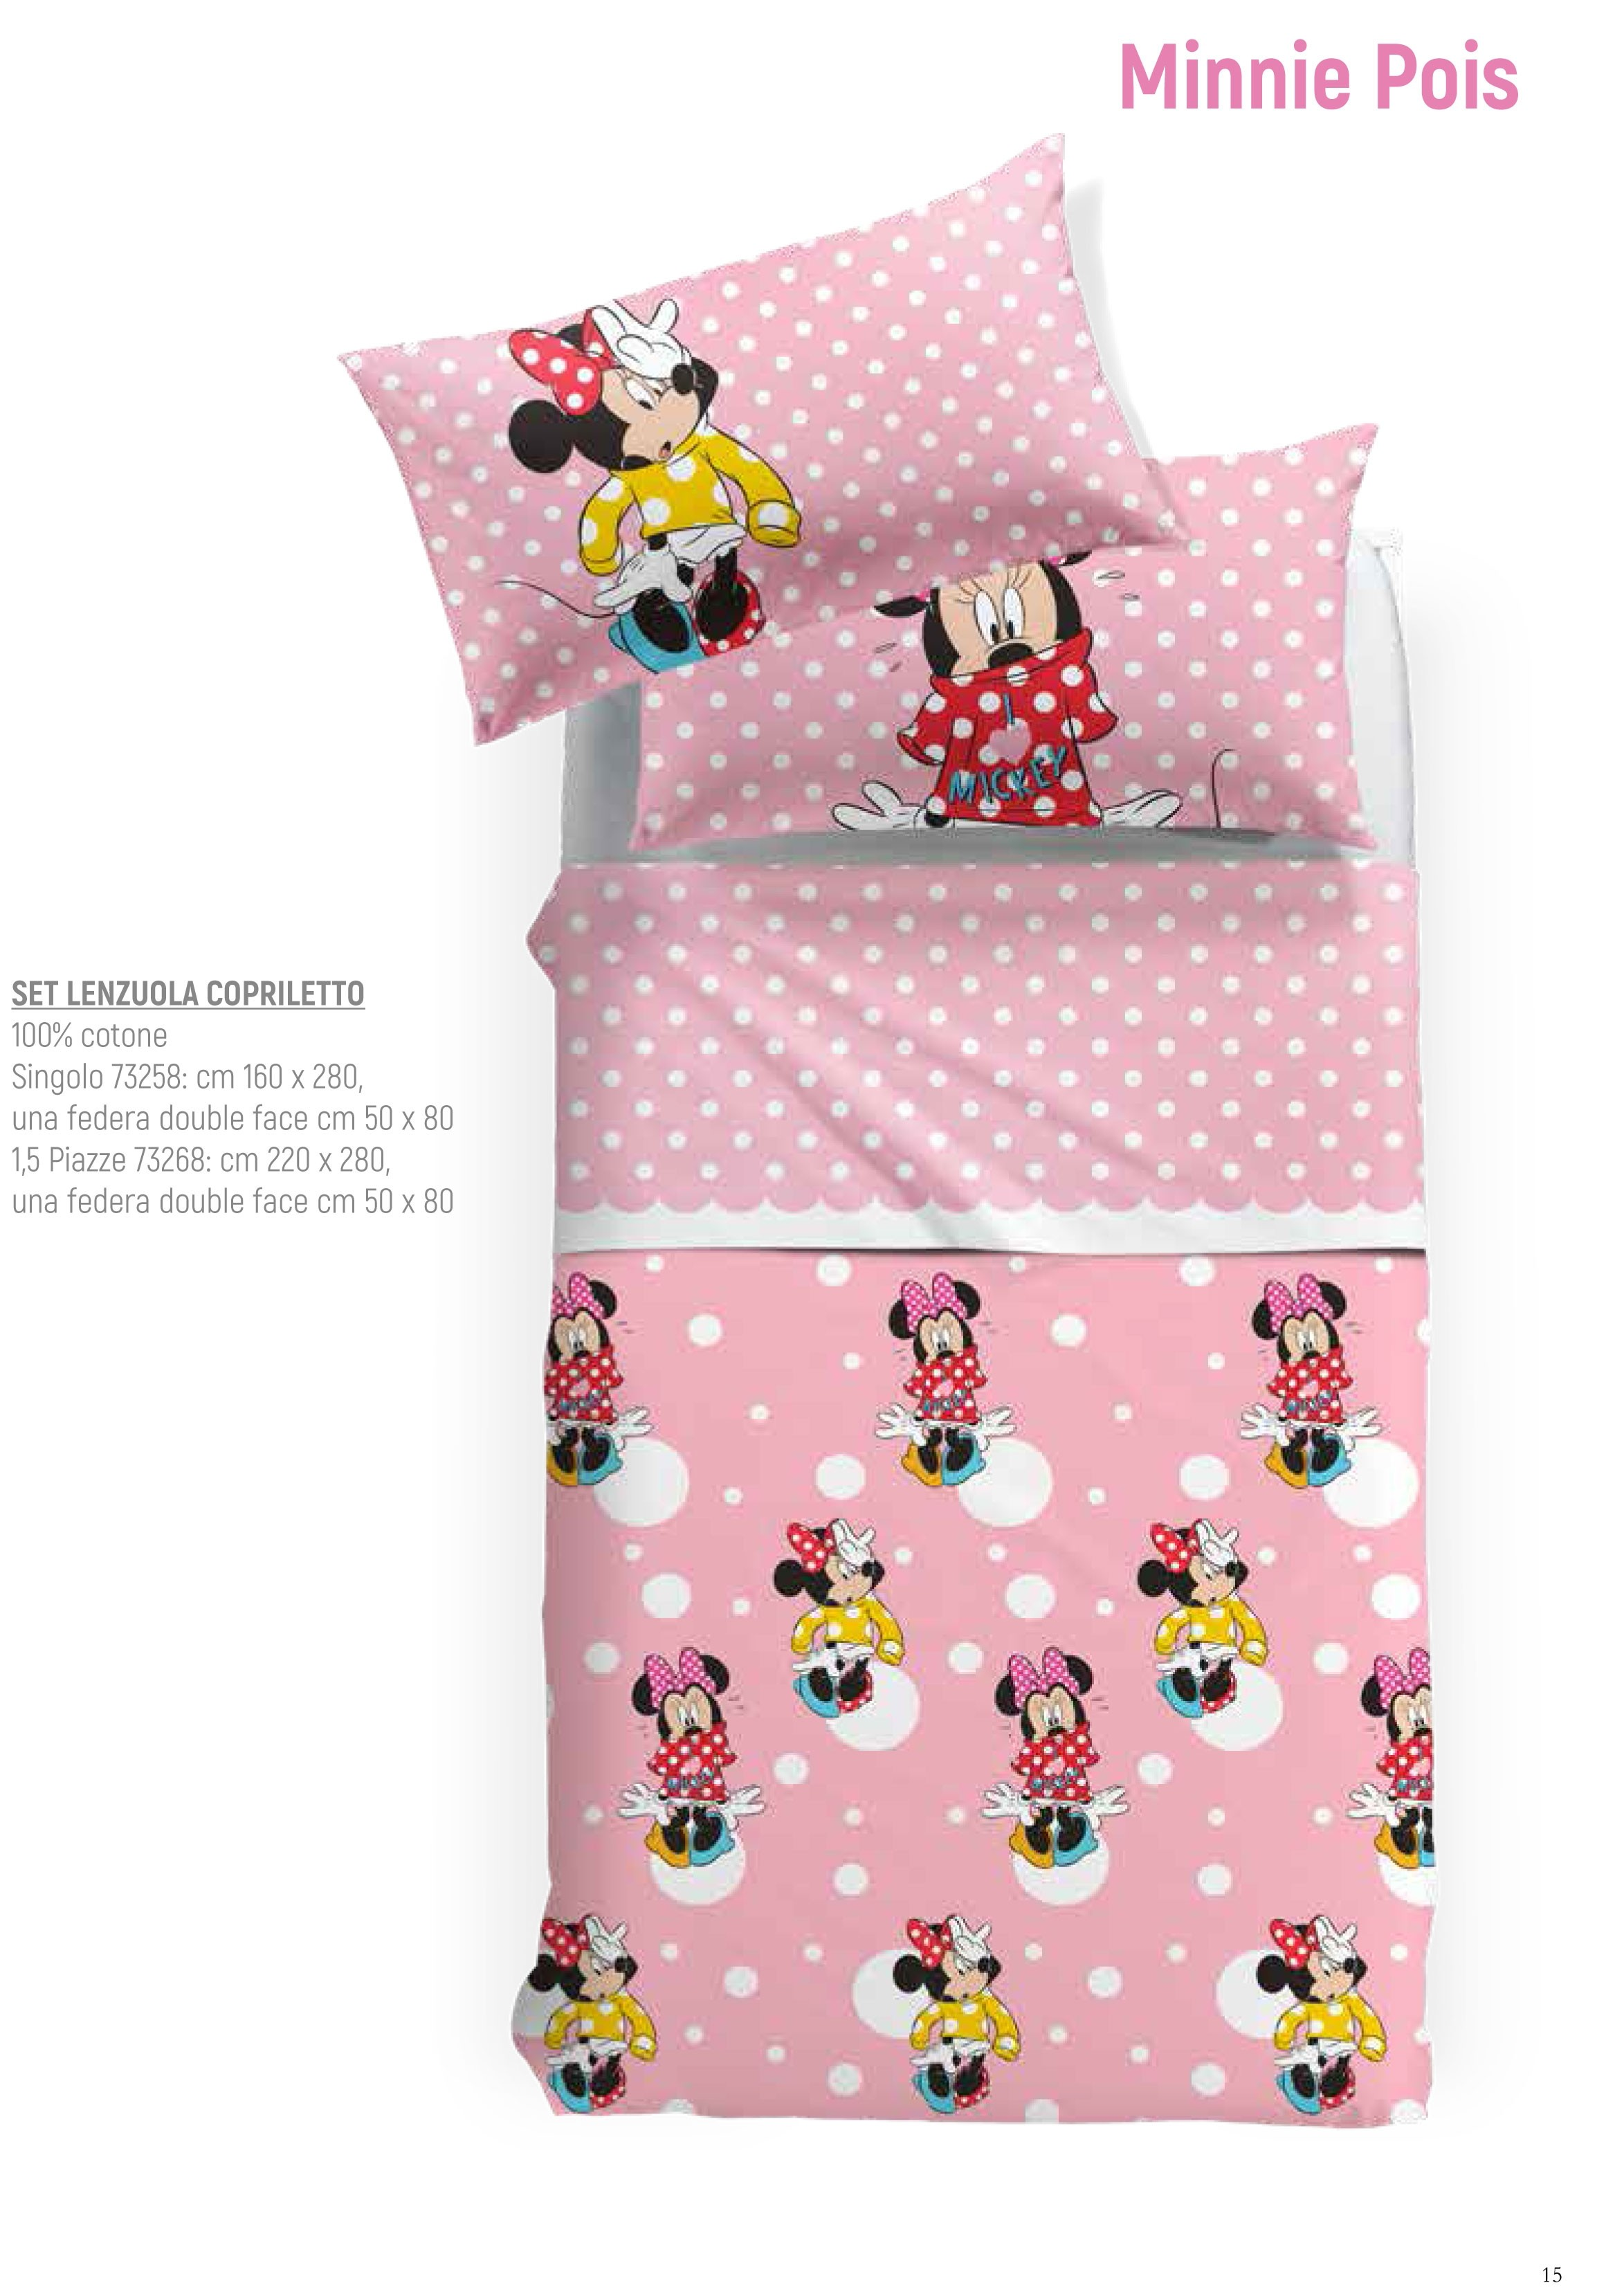 Copriletto Cotone Singolo Disney.Set Lenzuola Copriletto Disney Minnie Pois By Caleffi